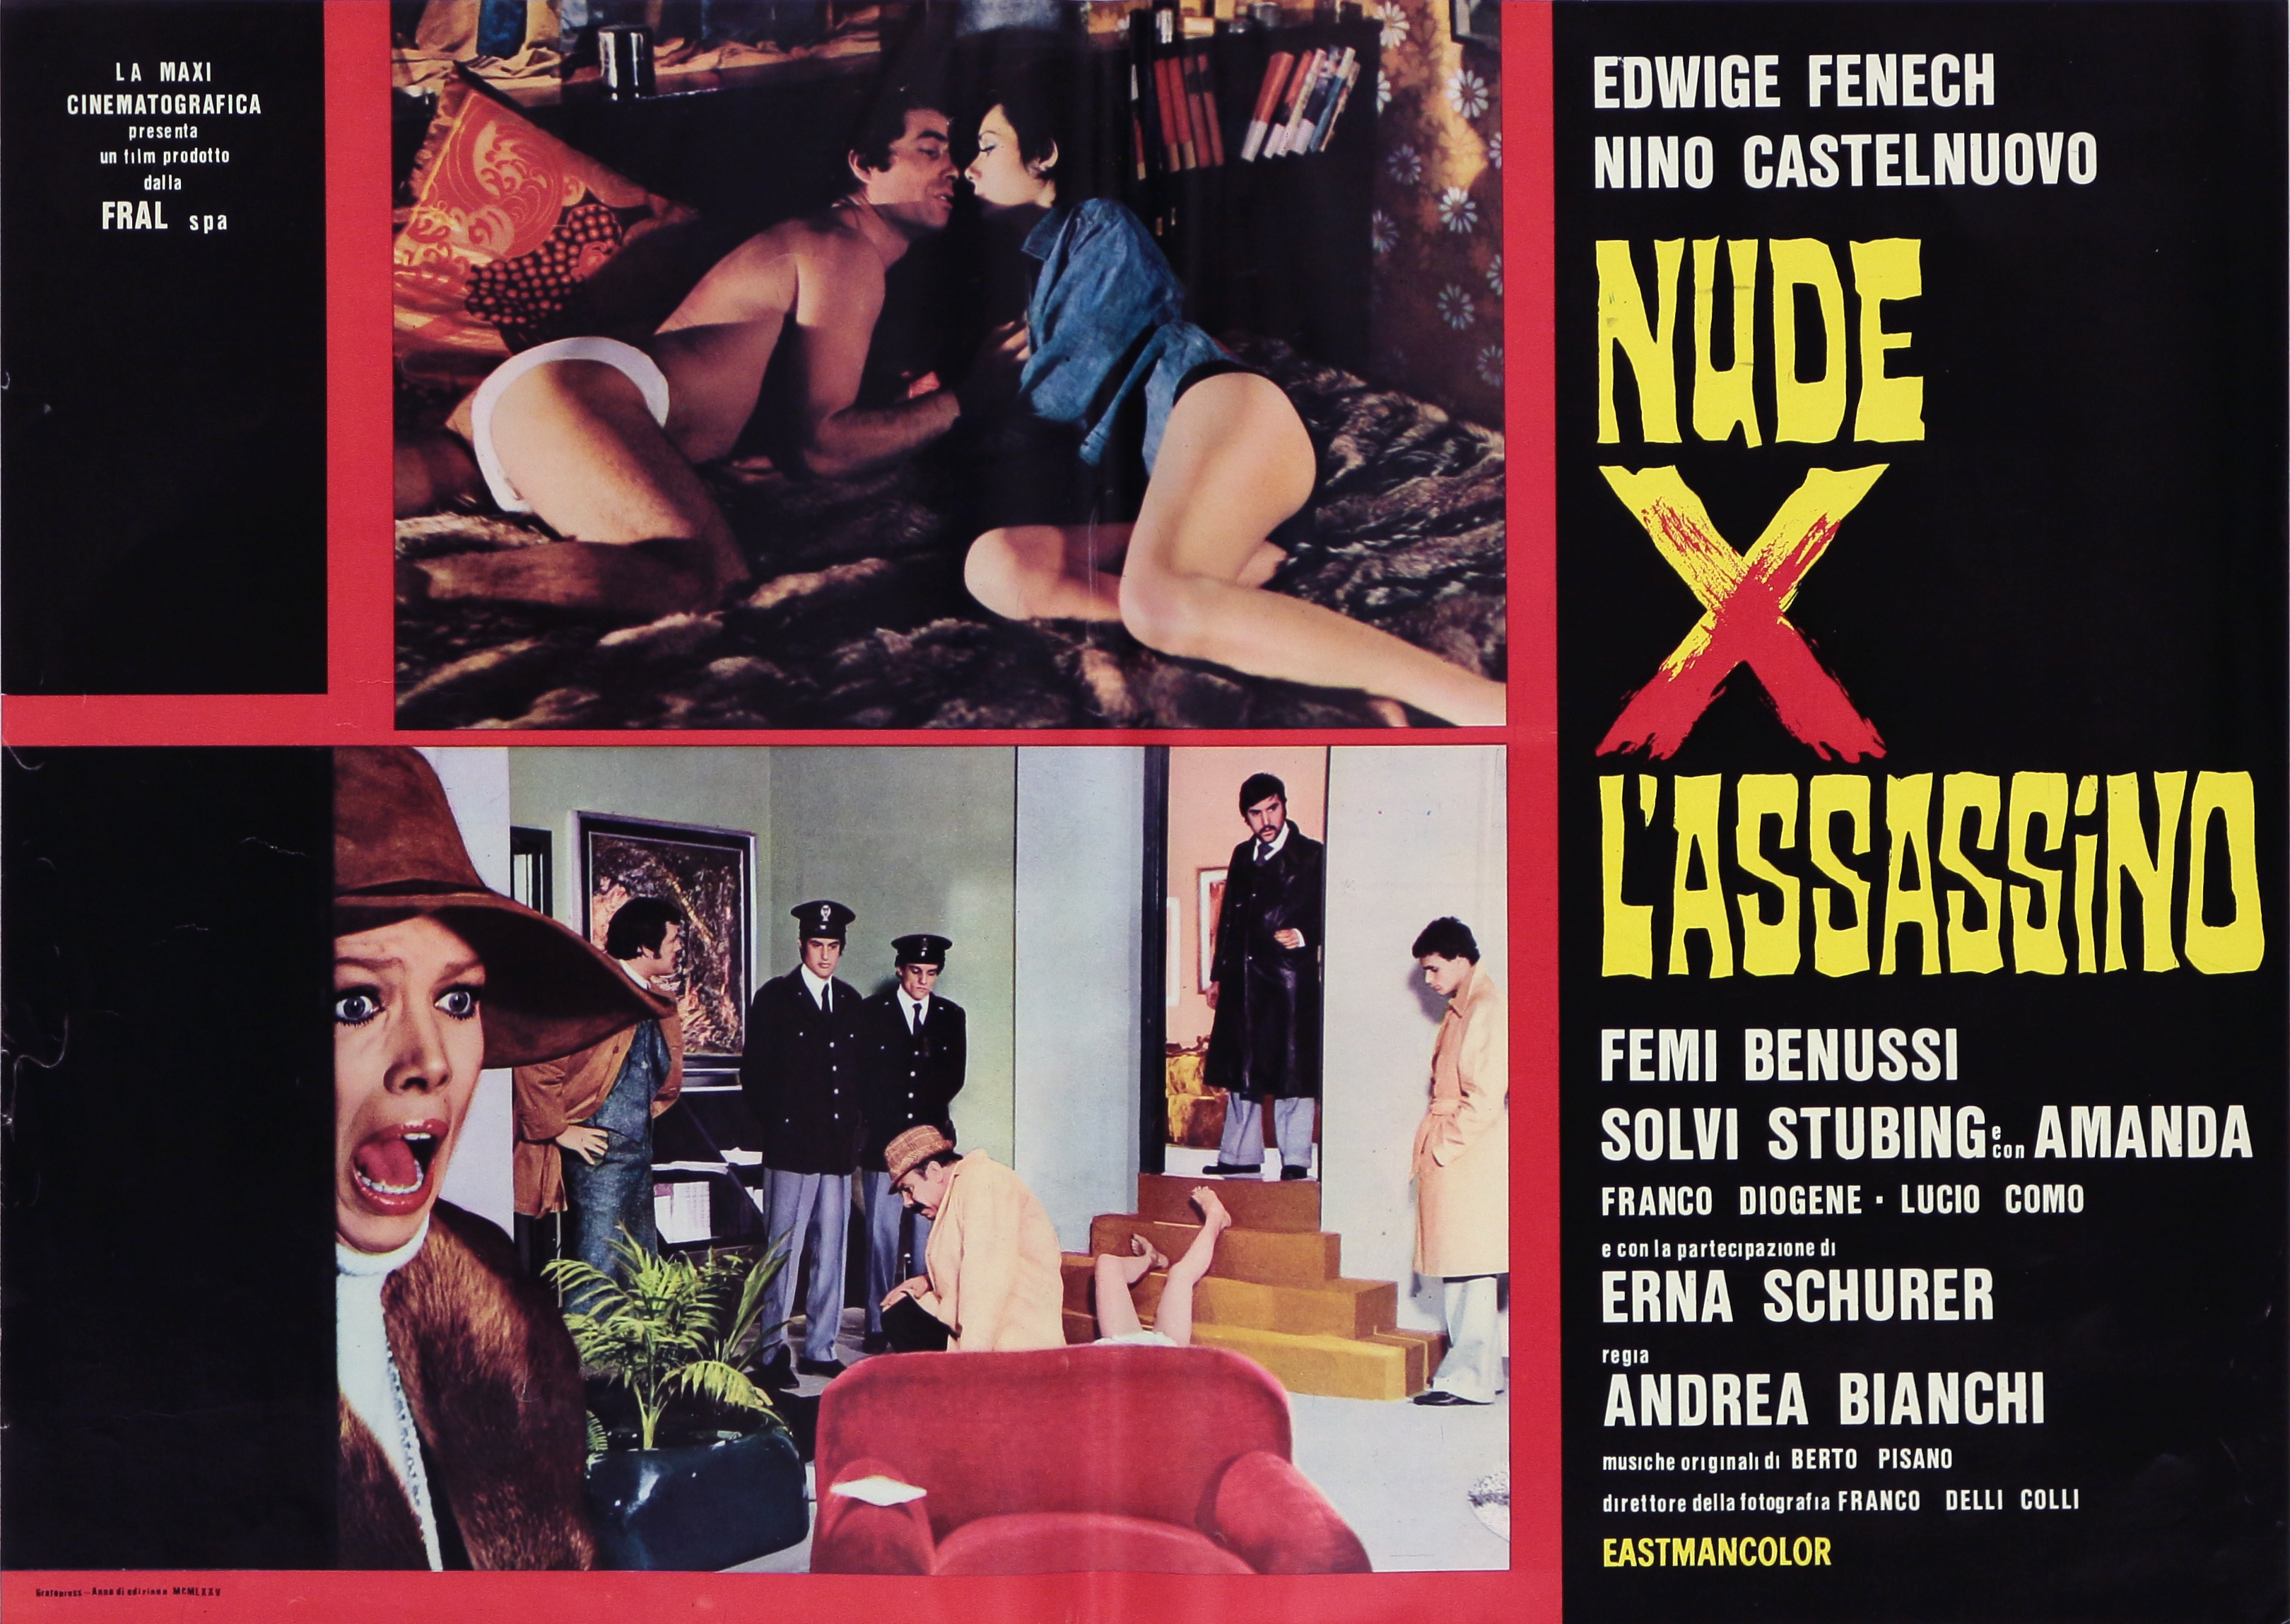 Nino Castelnuovo, Edwige Fenech, and Solvi Stubing in Nude per l'assassino (1975)